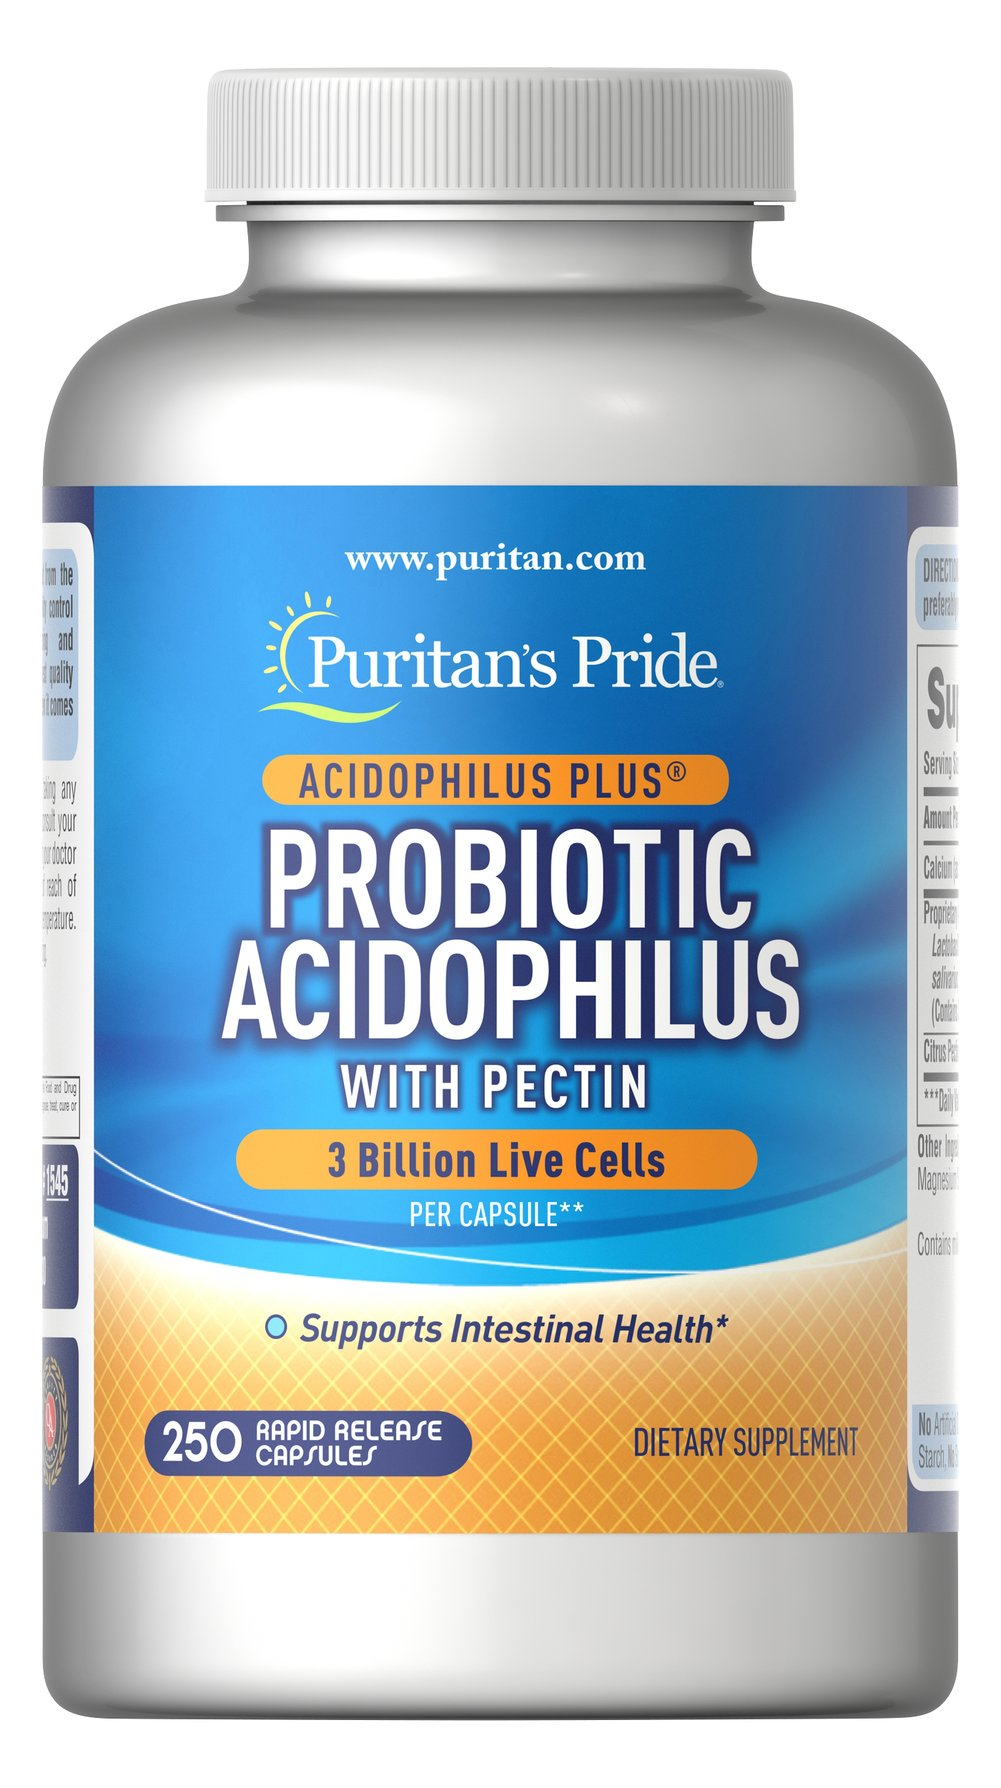 Probiotic Acidophilus with Pectin Thumbnail Alternate Bottle View